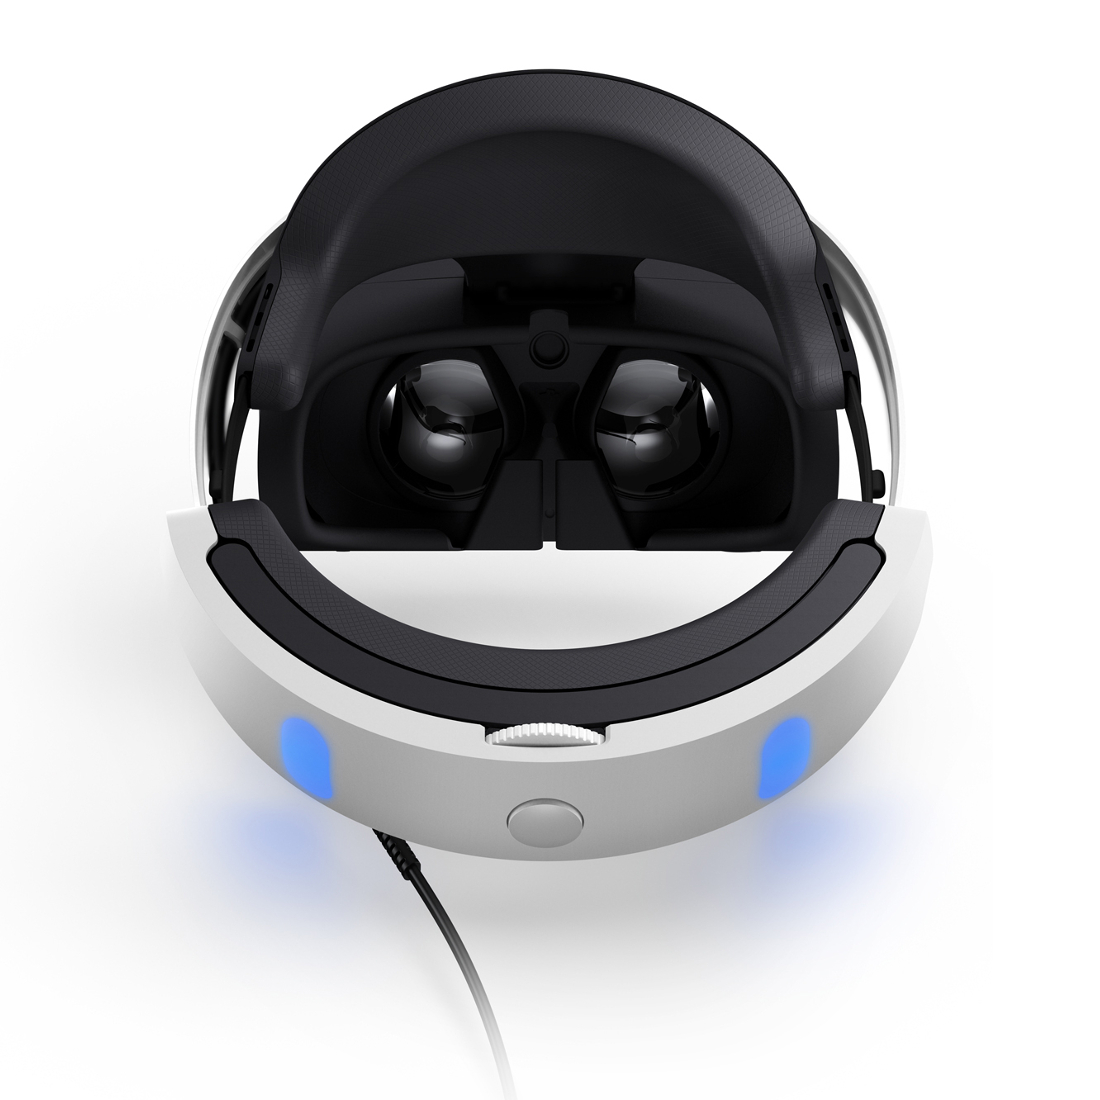 sony playstation vr achat pas cher avis. Black Bedroom Furniture Sets. Home Design Ideas